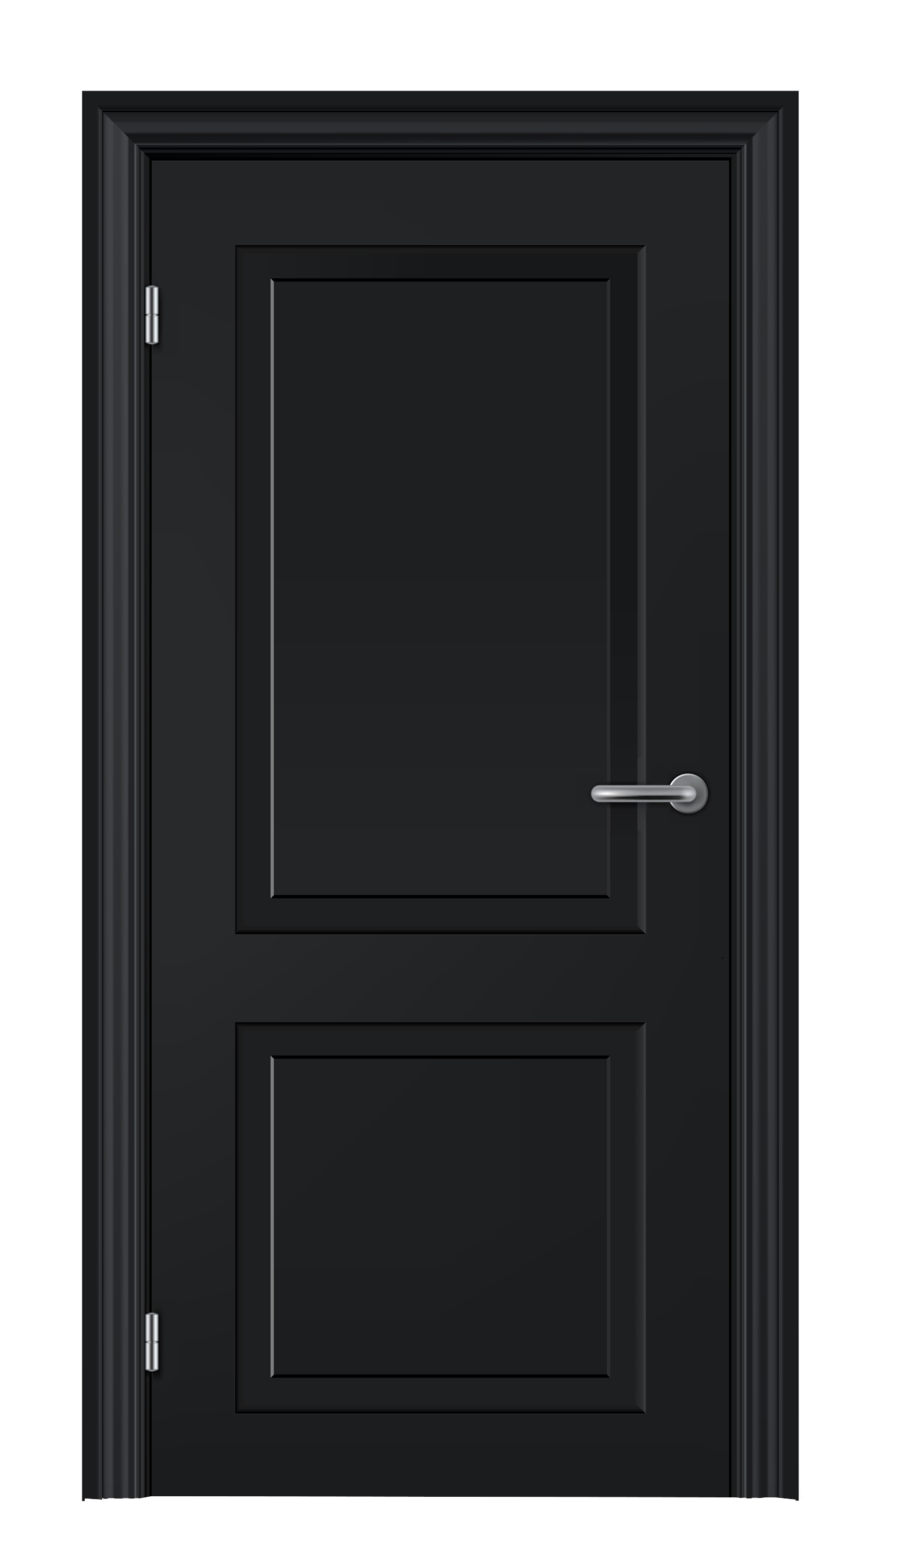 Door Icon 24509  sc 1 st  Web Icons PNG & Door PNG Image | Web Icons PNG